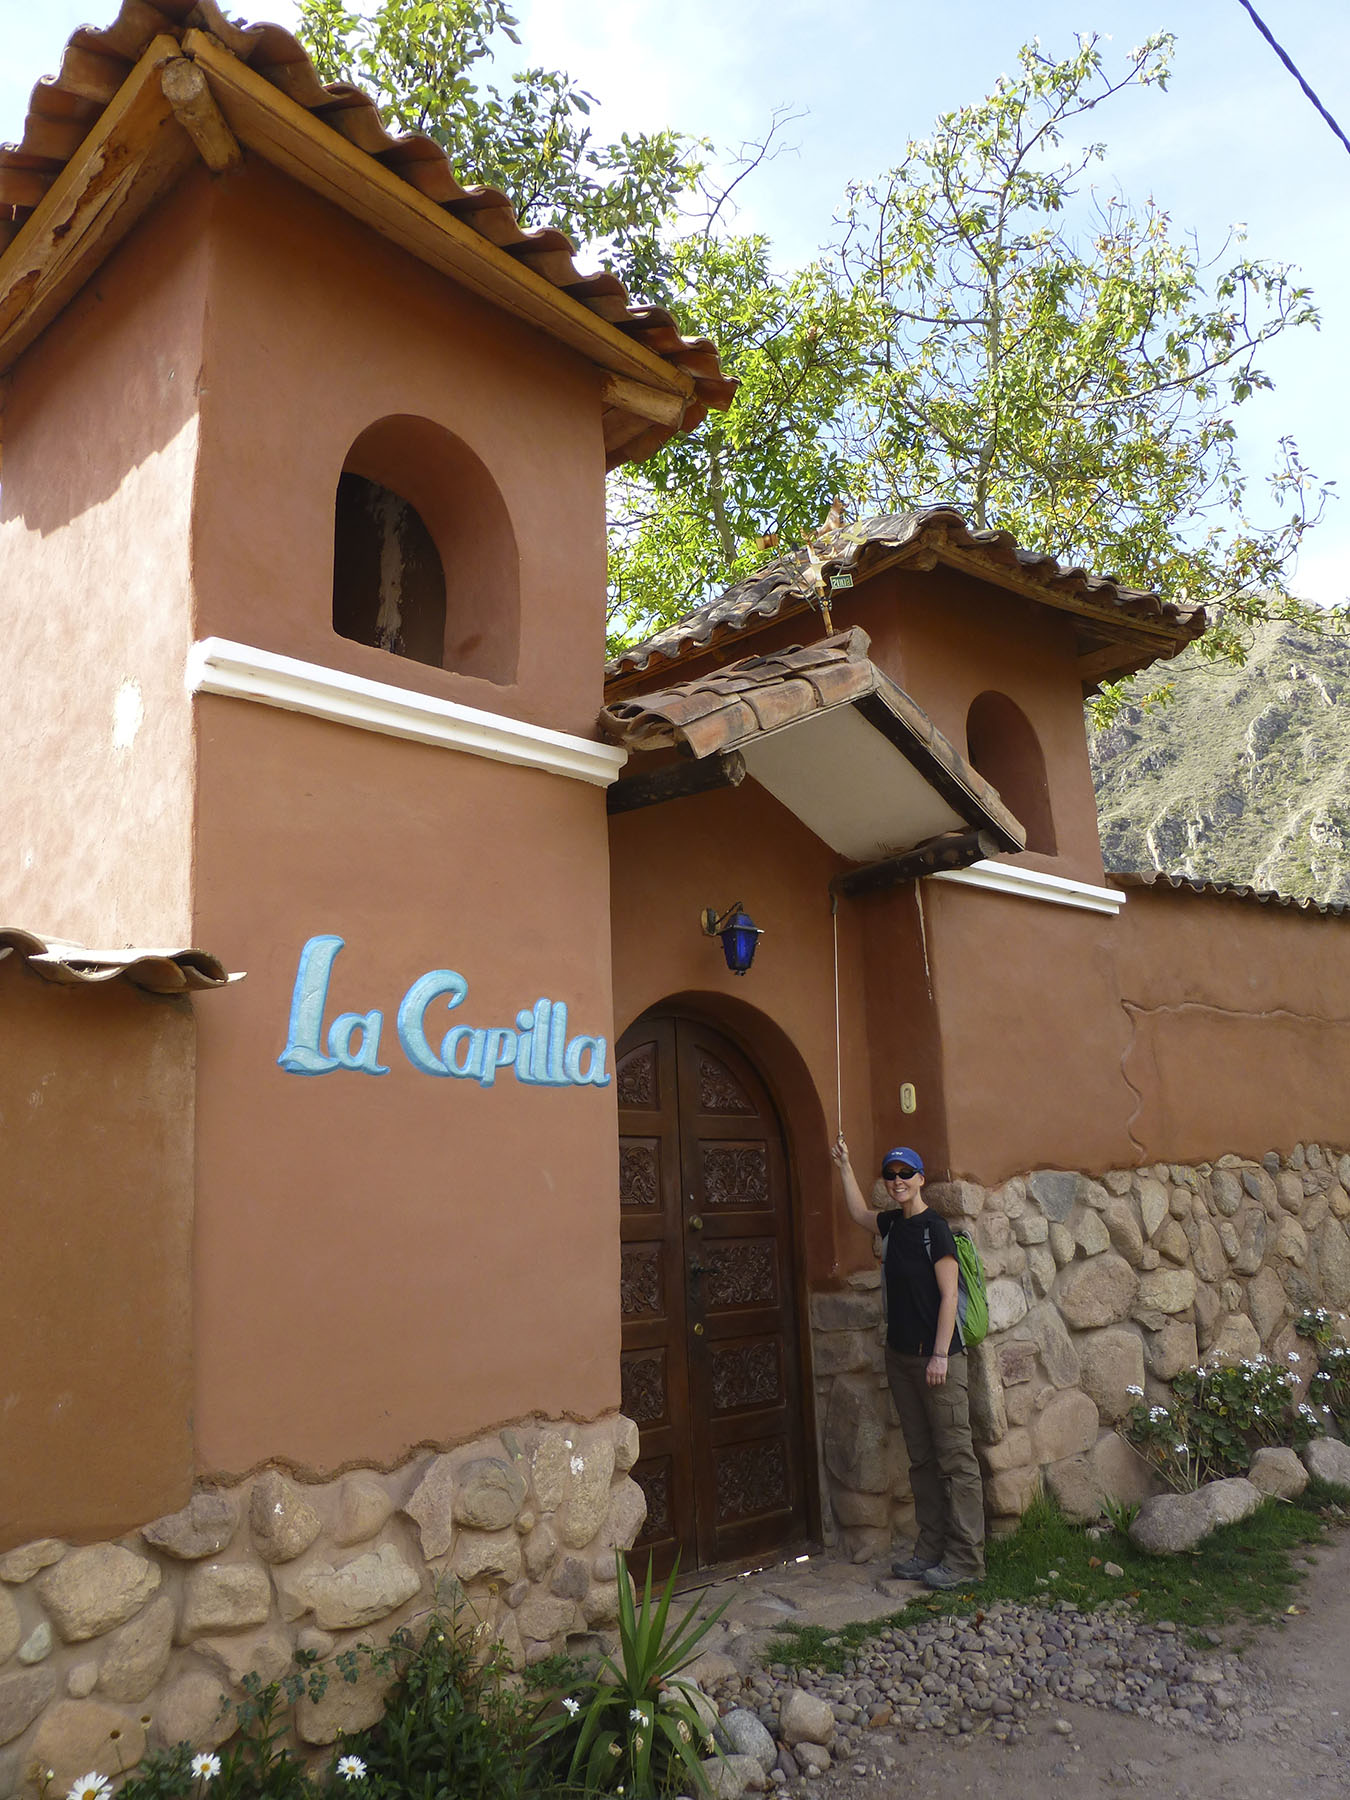 La Capilla Lodge.